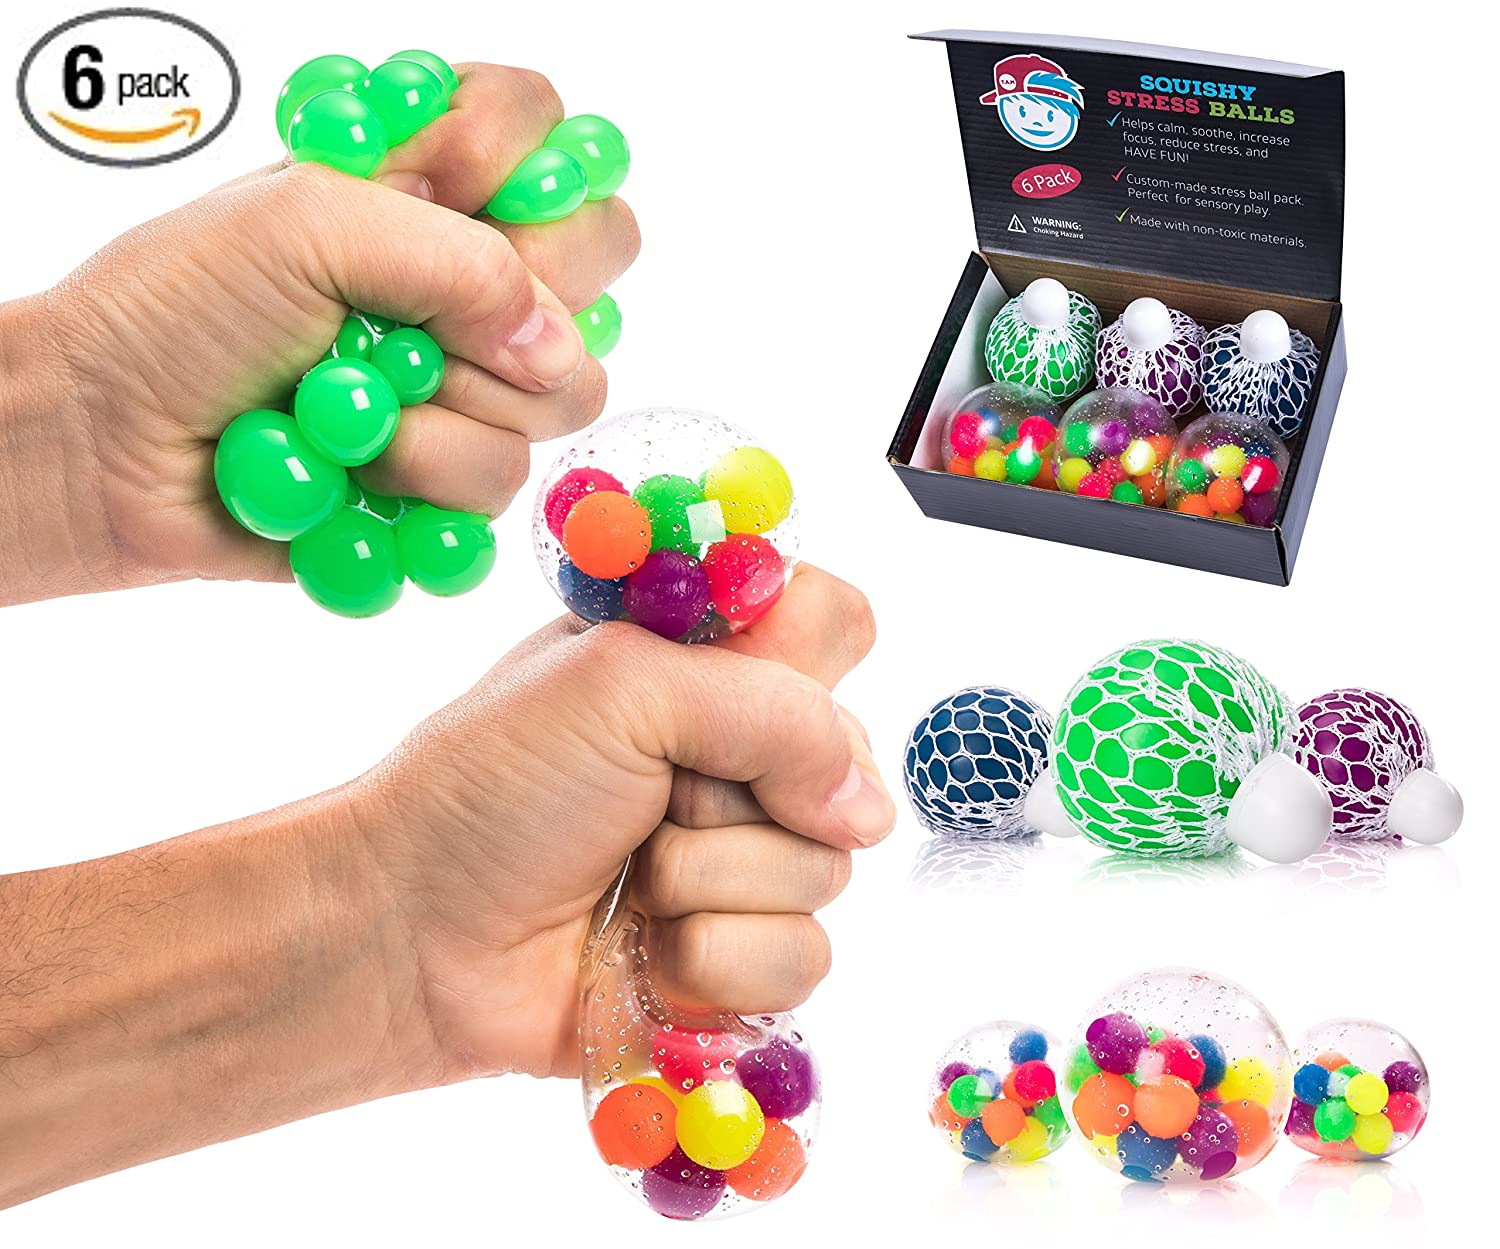 The Adventurous Mind Sensory Toys STRESS BALLS FOR KIDS PACK OF 6 [3 Mesh Stress Ball + 3 Bead Balls] Tactile Sensory Squishy Stress Balls for Anxiety Autism & ADHD - Best Stress Ball & Squeeze Toys for Calming Therapy Tools in School